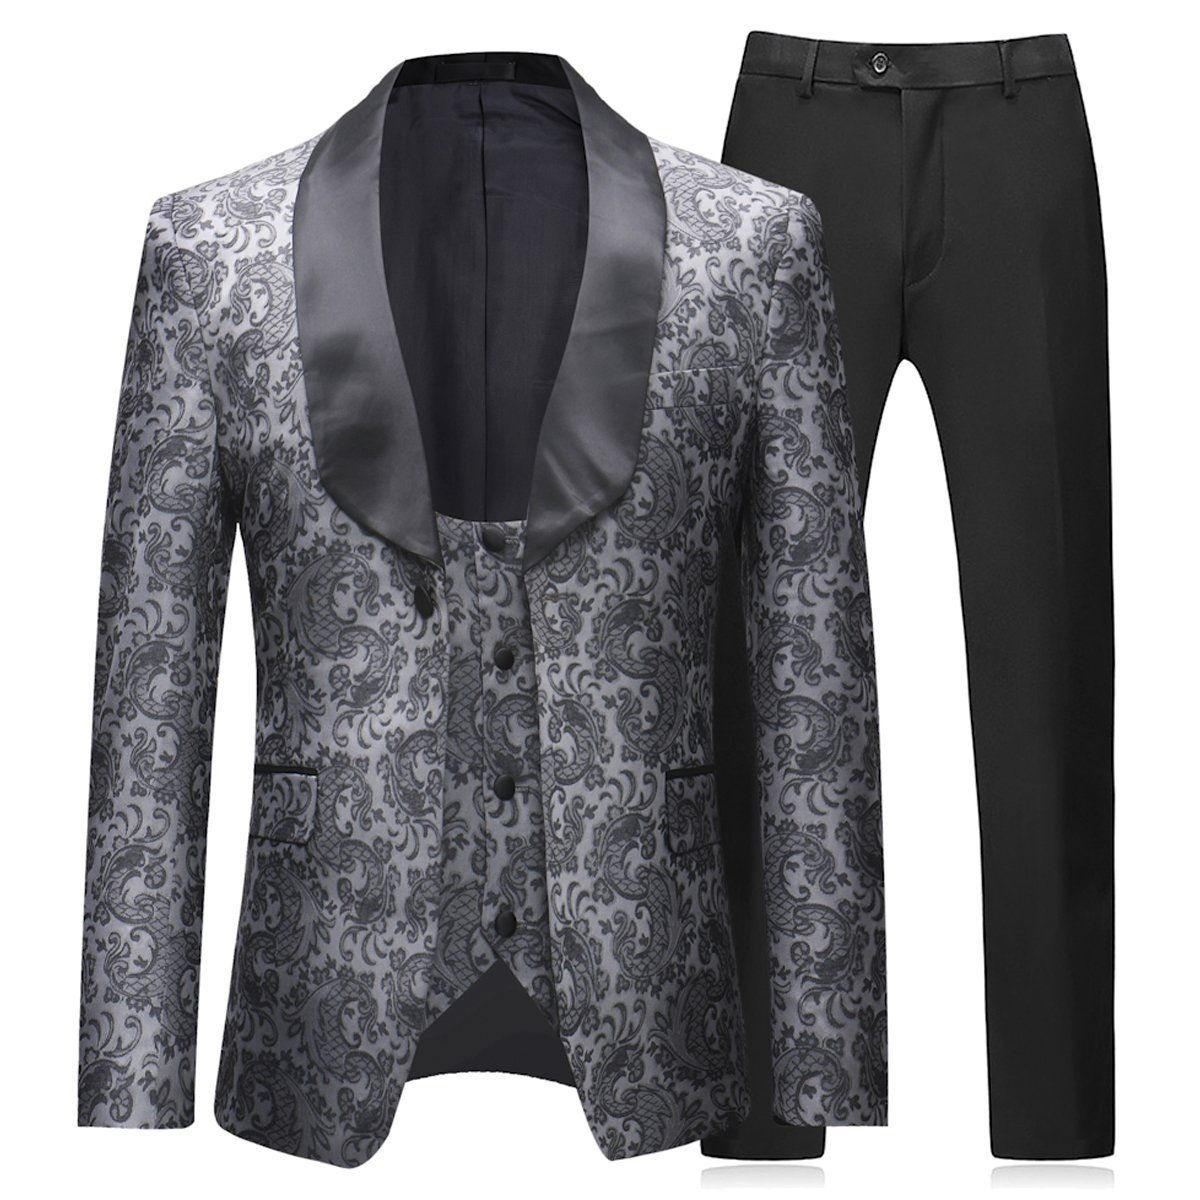 2c8a2e42404 reat Material  The gray tuxedo suits made of Polyester Jacquard